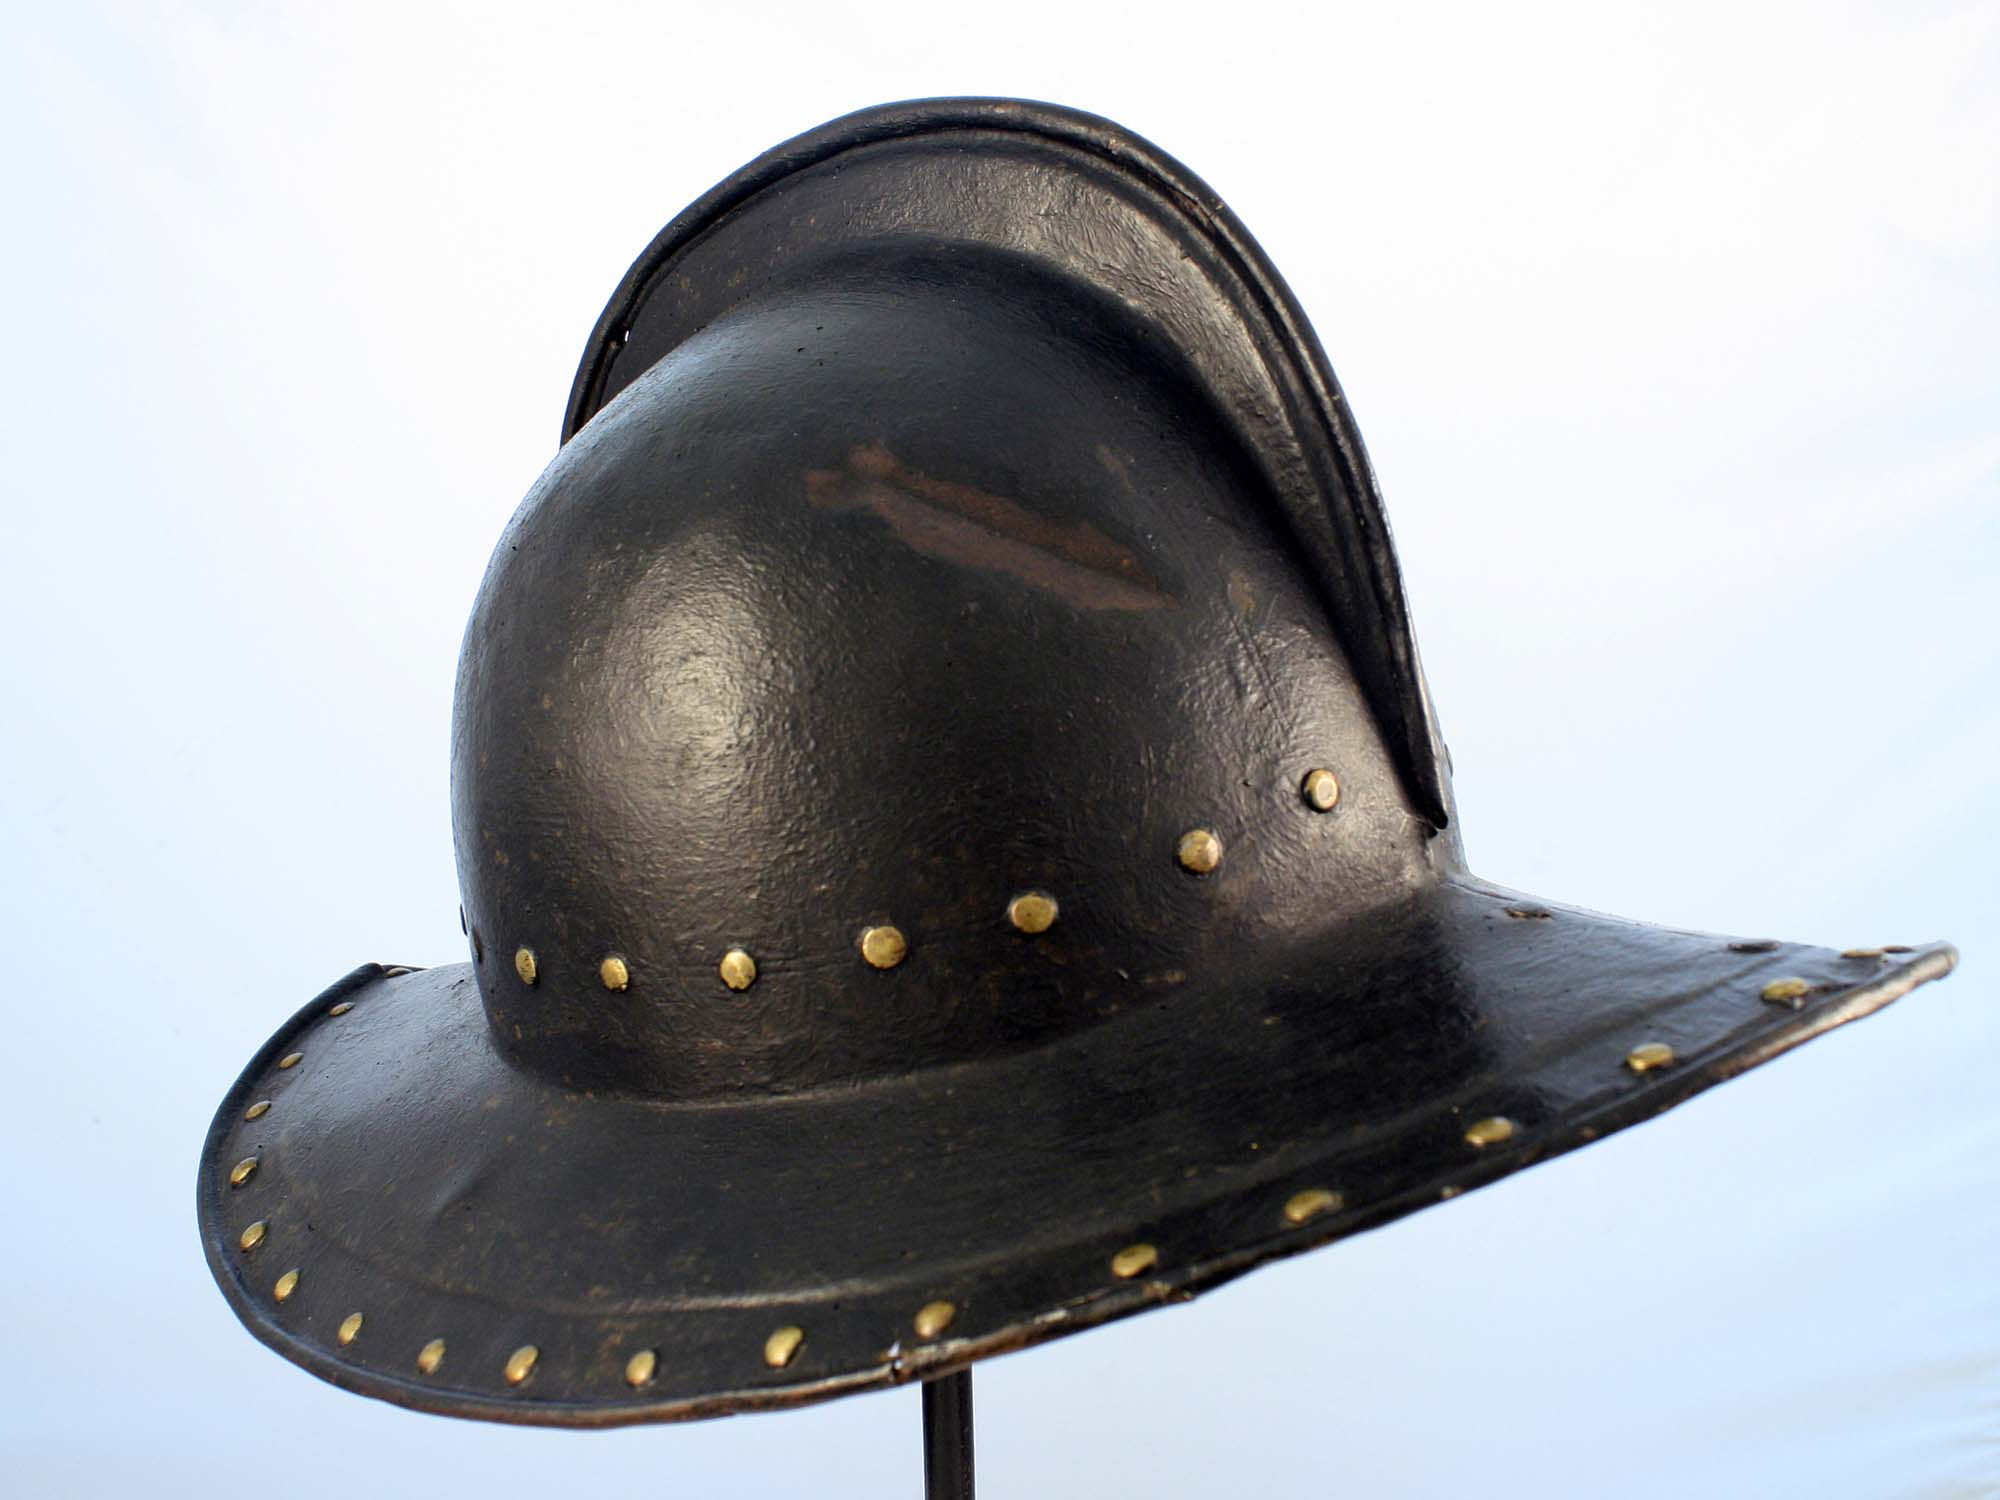 a photo of a large steel helmet with flared brim and various marks on it